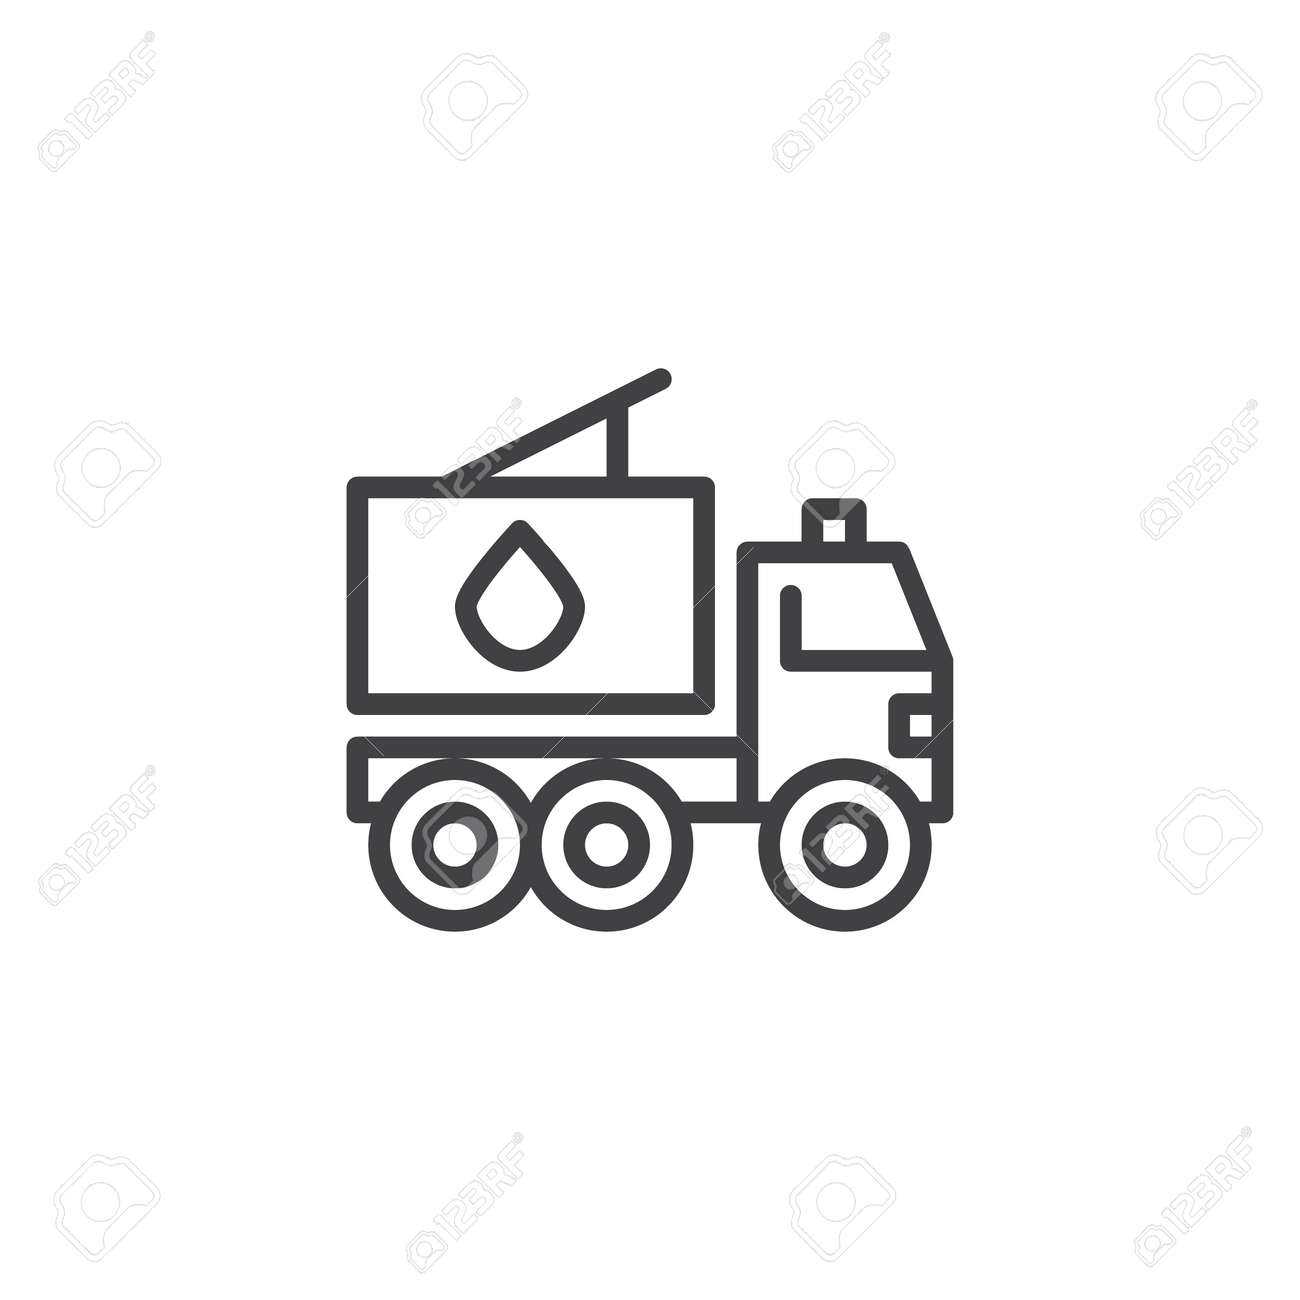 Fire Truck Line Icon Outline Vector Sign Linear Style Pictograph Isolated On White